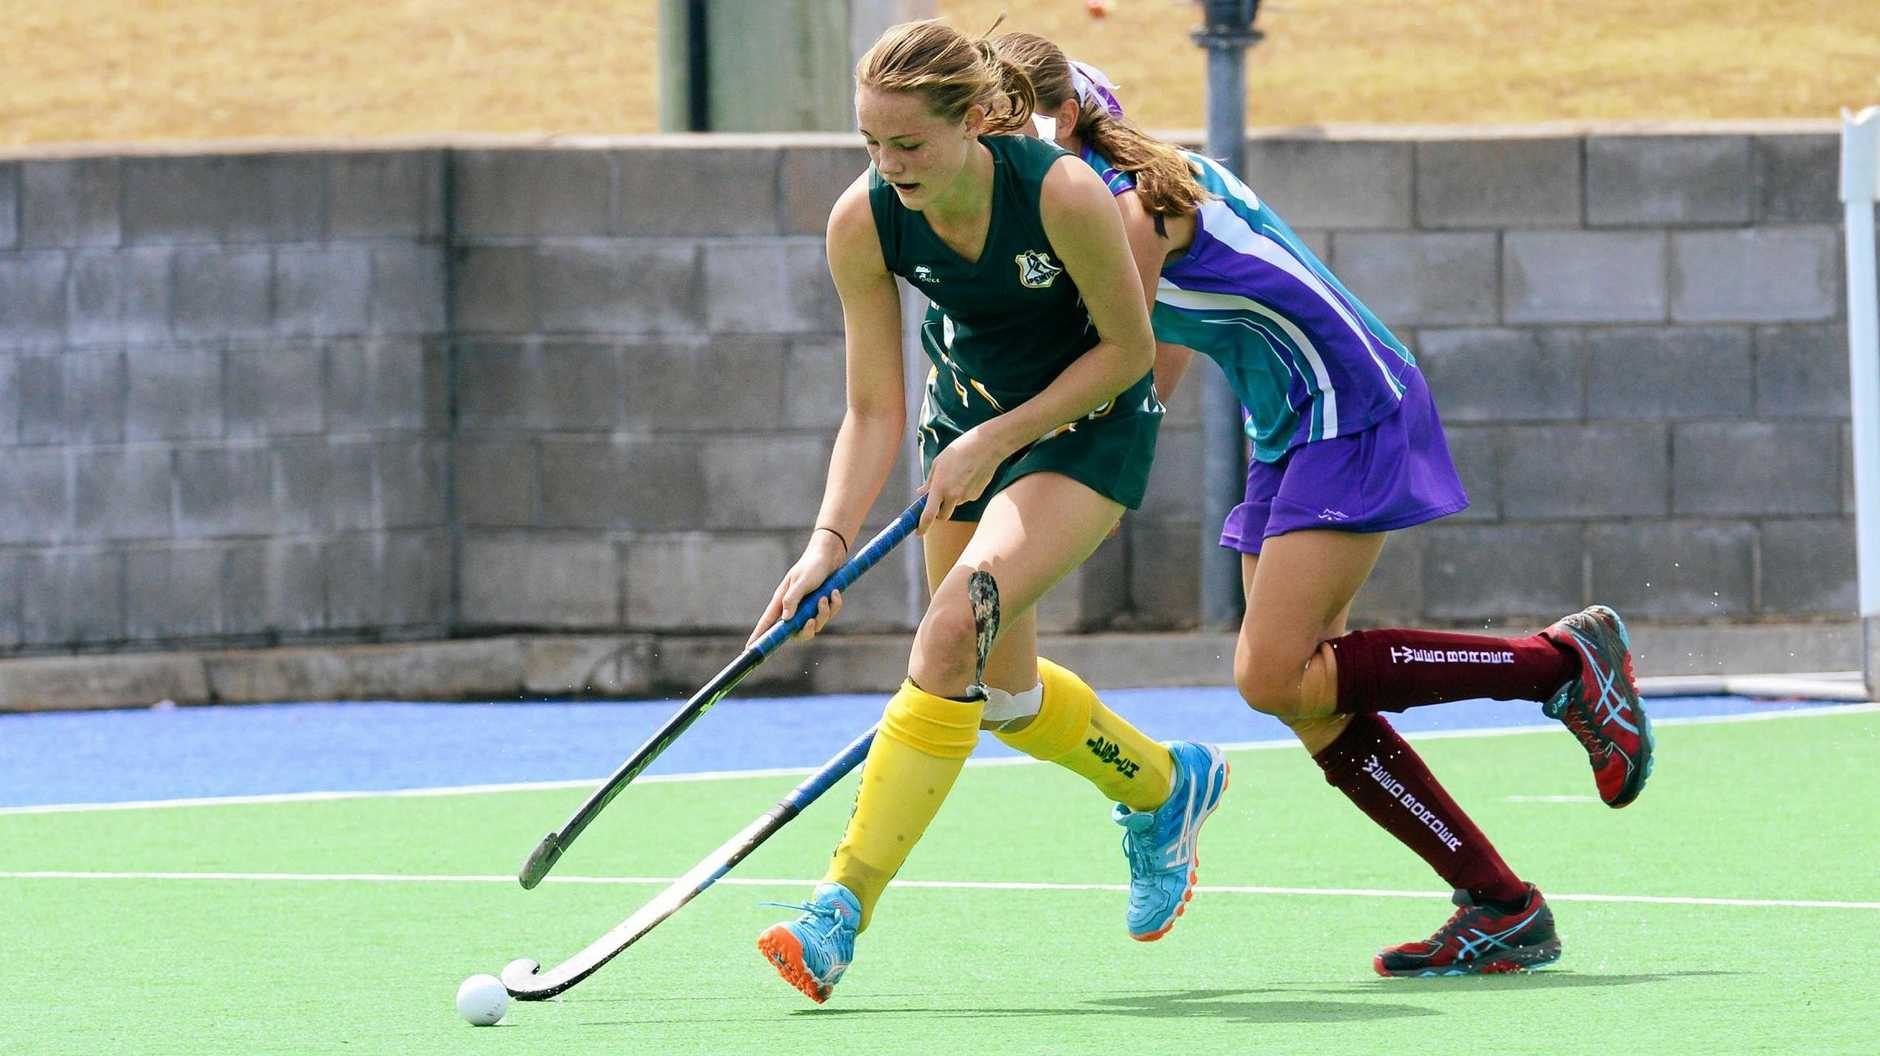 South West Lumberjills hockey player Jordn Office has been selected in the Queensland under-21 and Australia Futures squads.